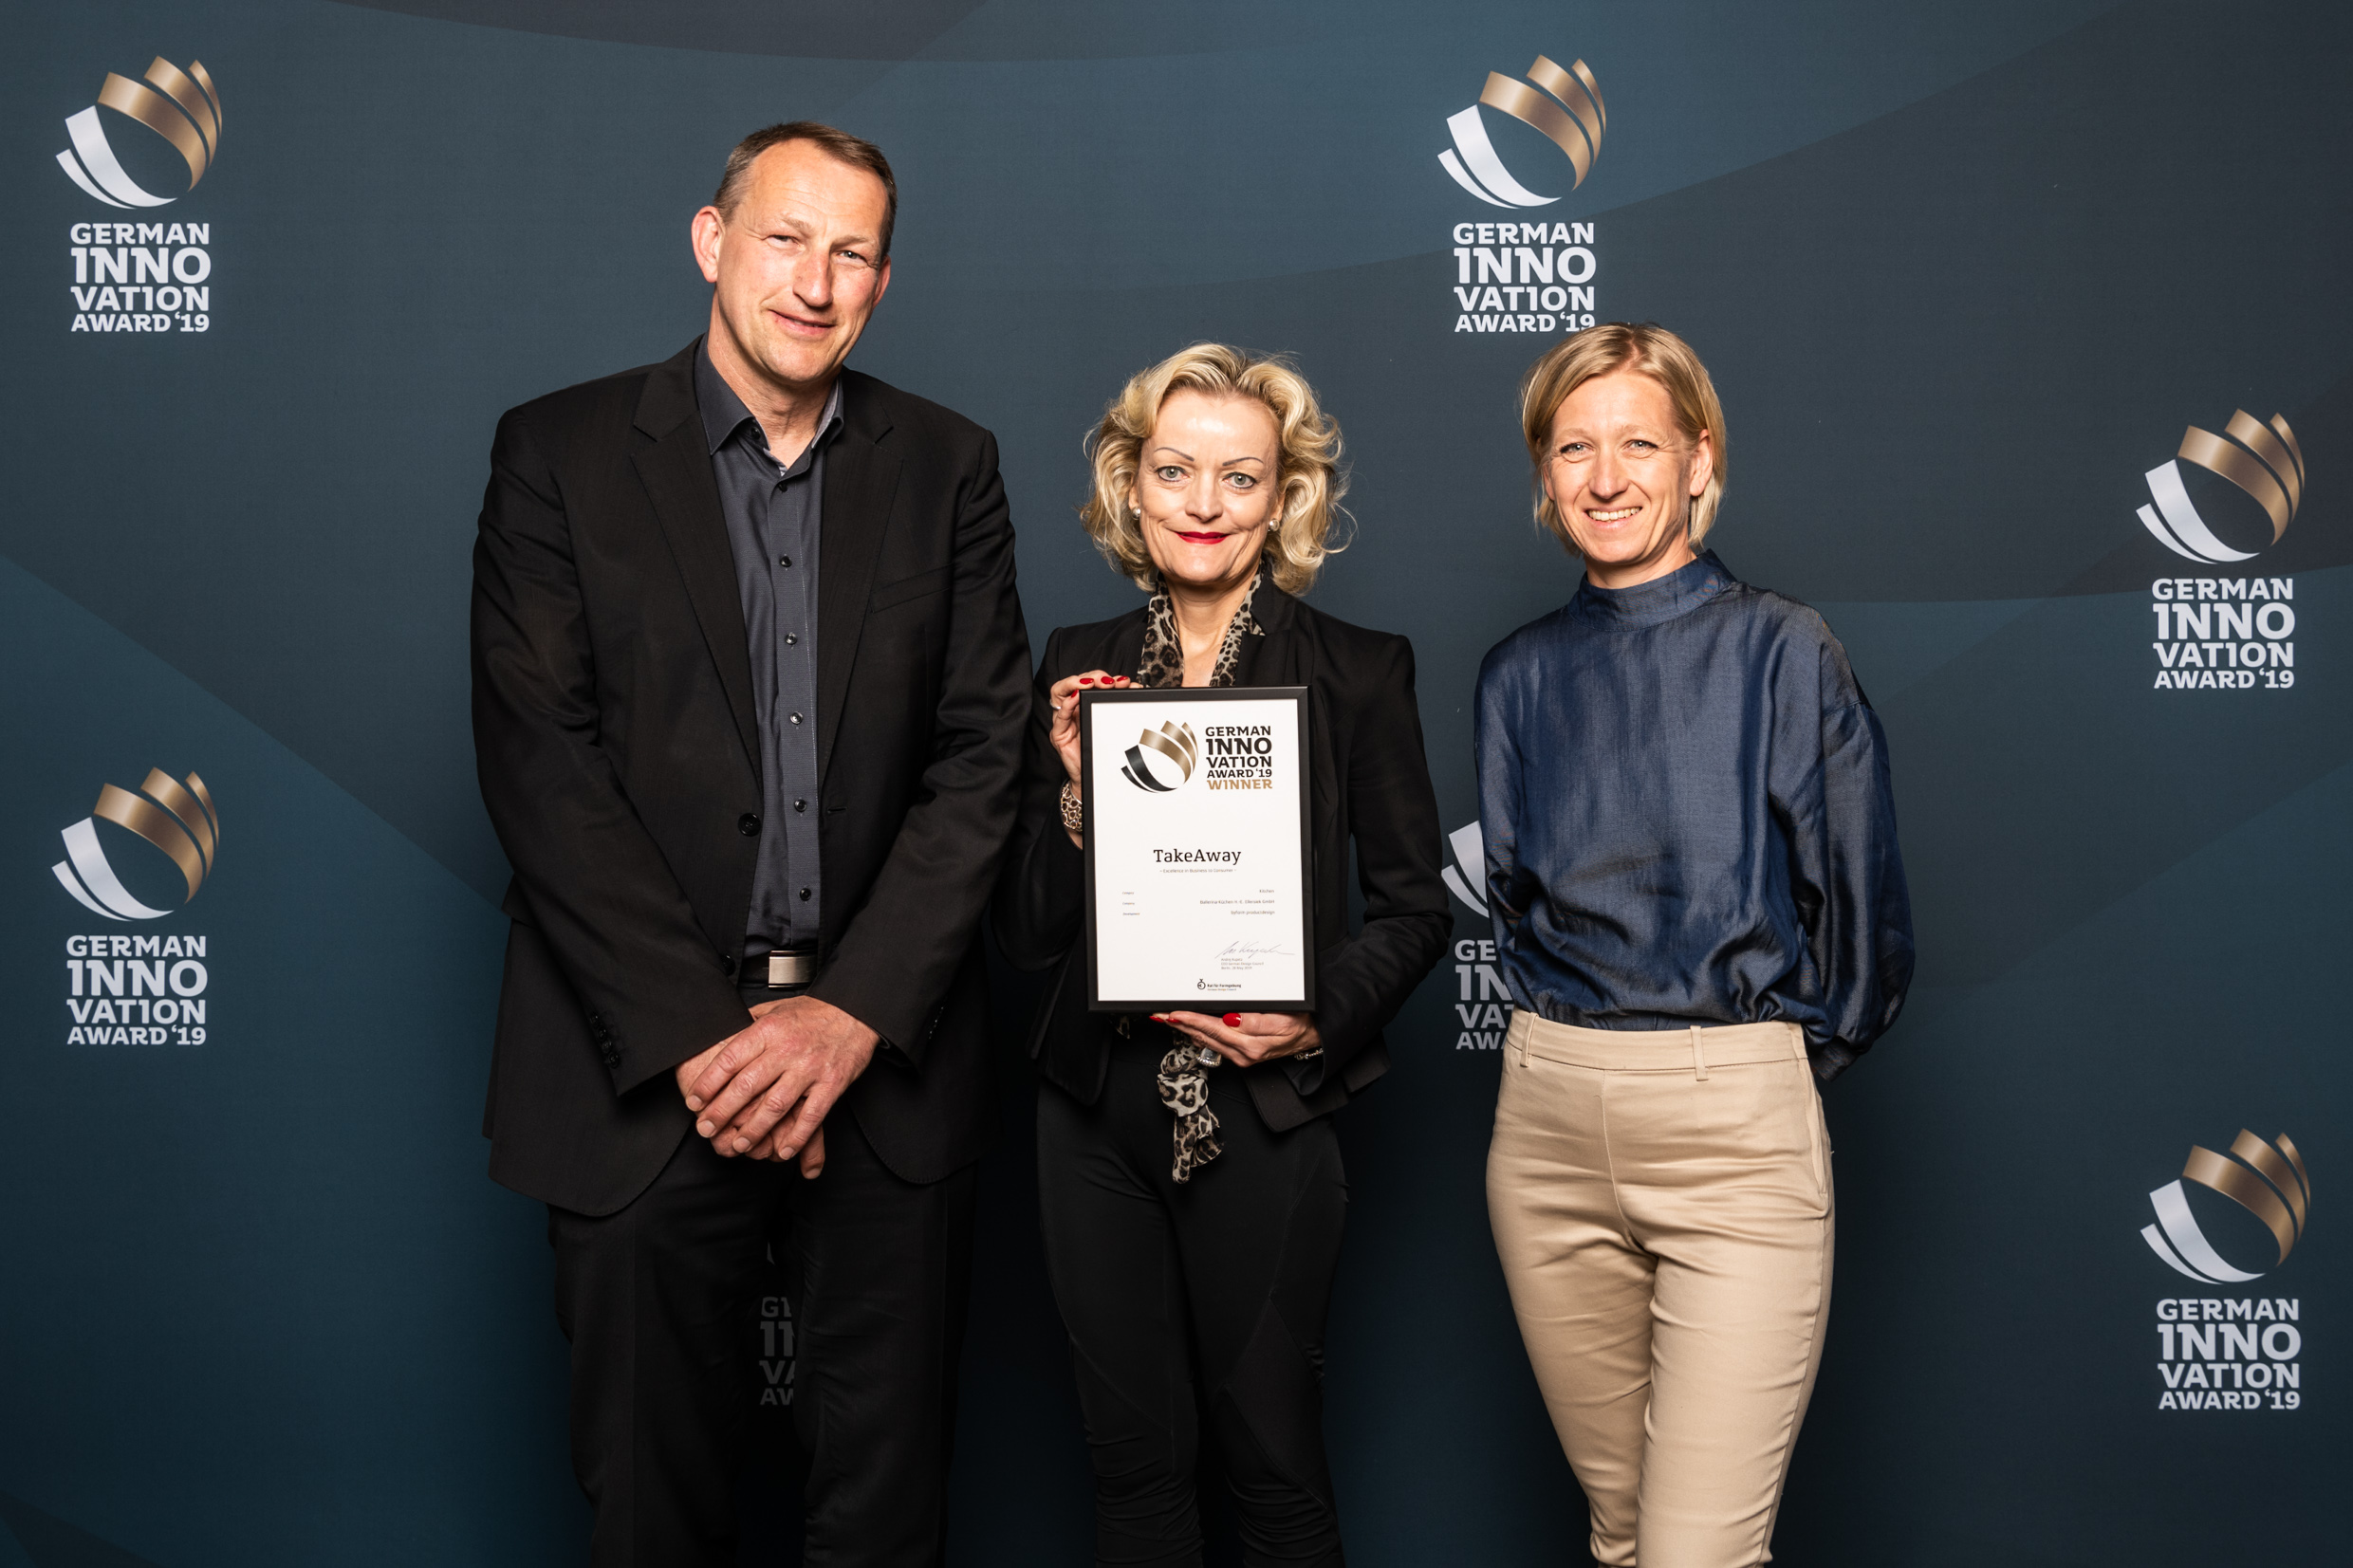 Ballerina Küchen wins The German Innovation Award 2019.